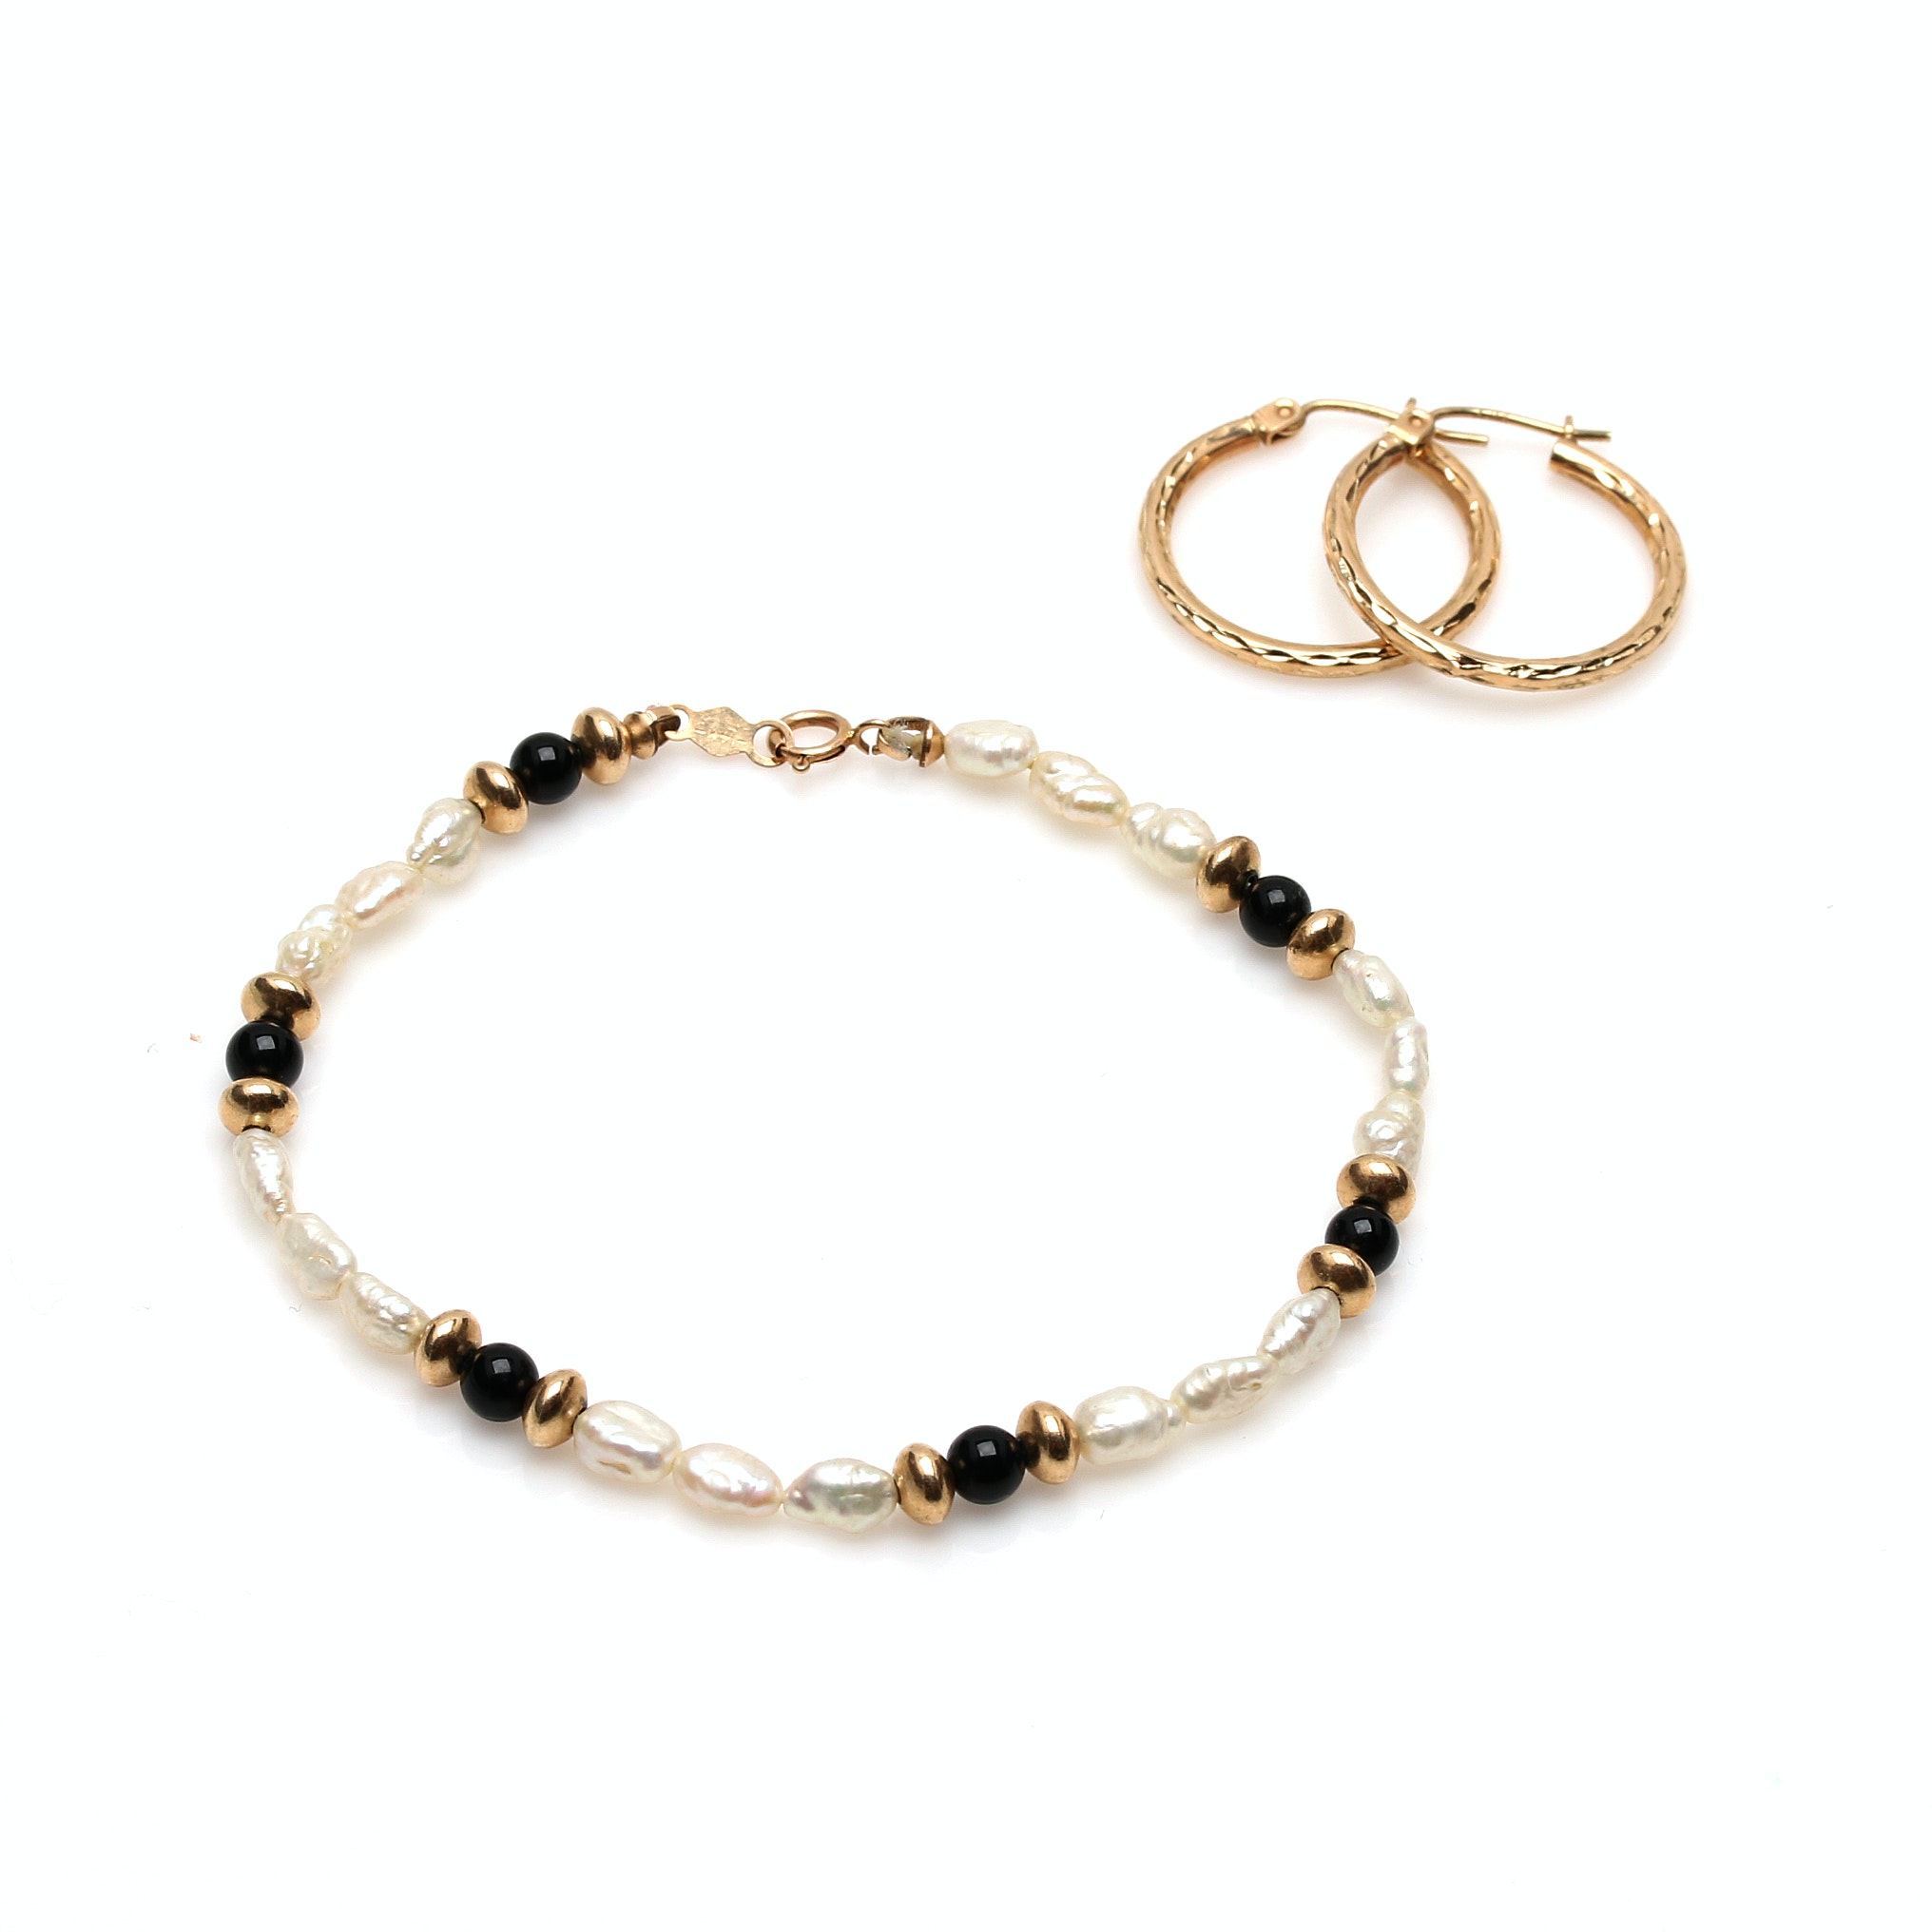 10K Yellow Gold Hoop Earrings and 14K Yellow Gold Pearl and Black Onyx Bracelet